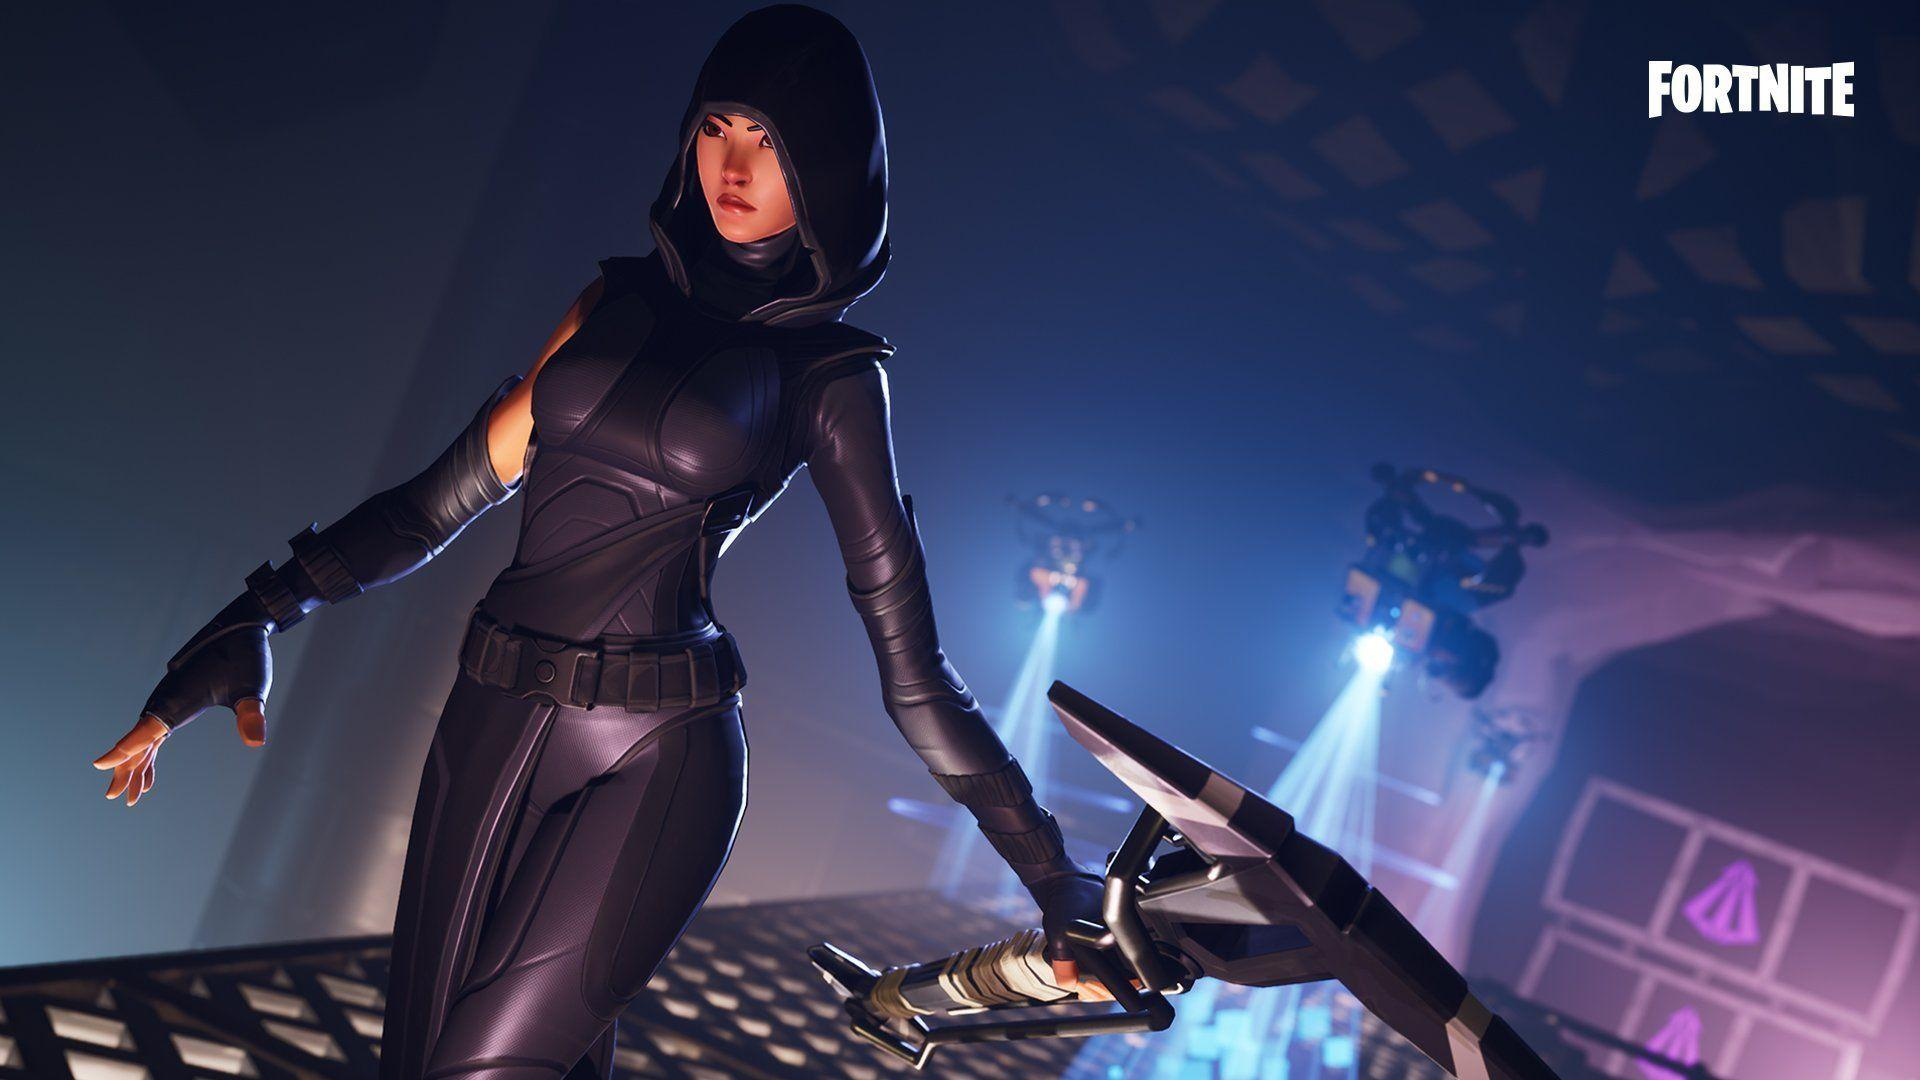 Fortnite Fate | Outfits - Fortnite Skins